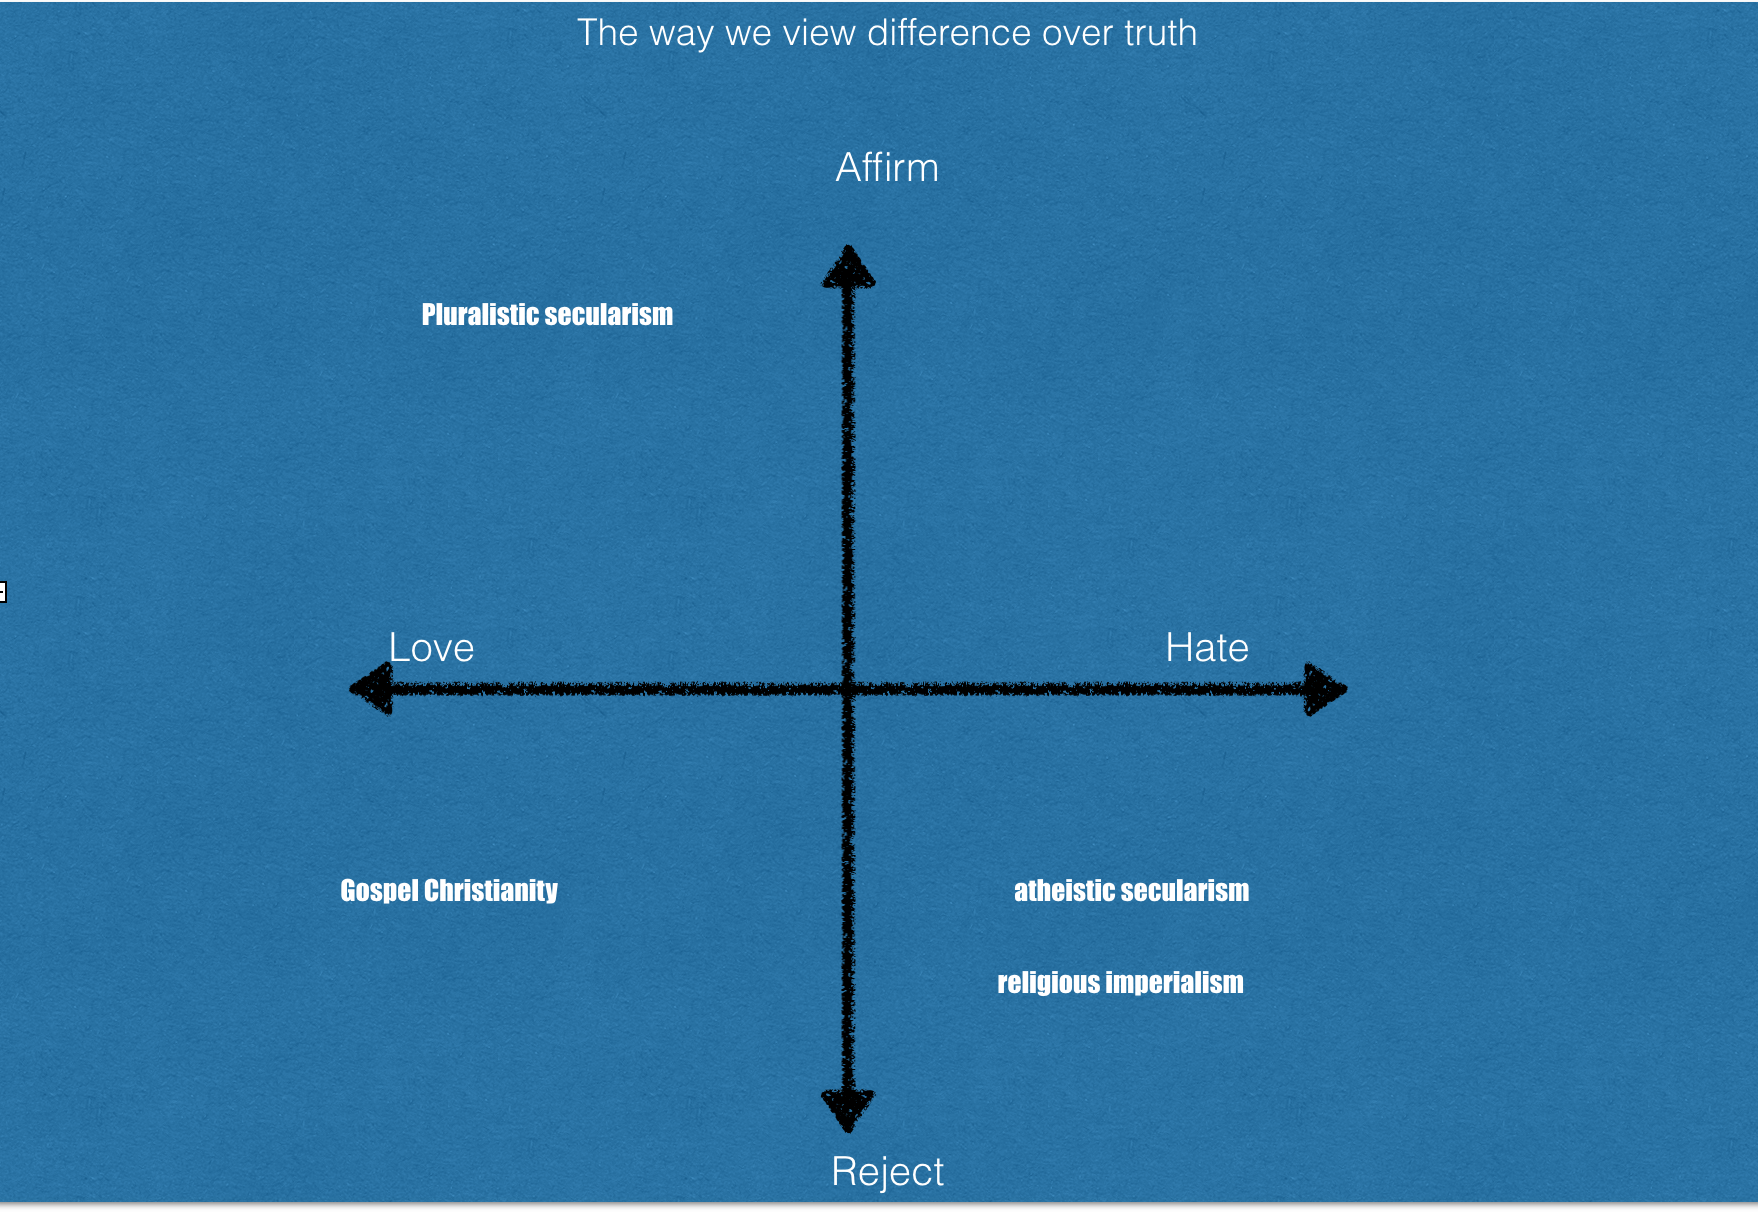 the way we view difference